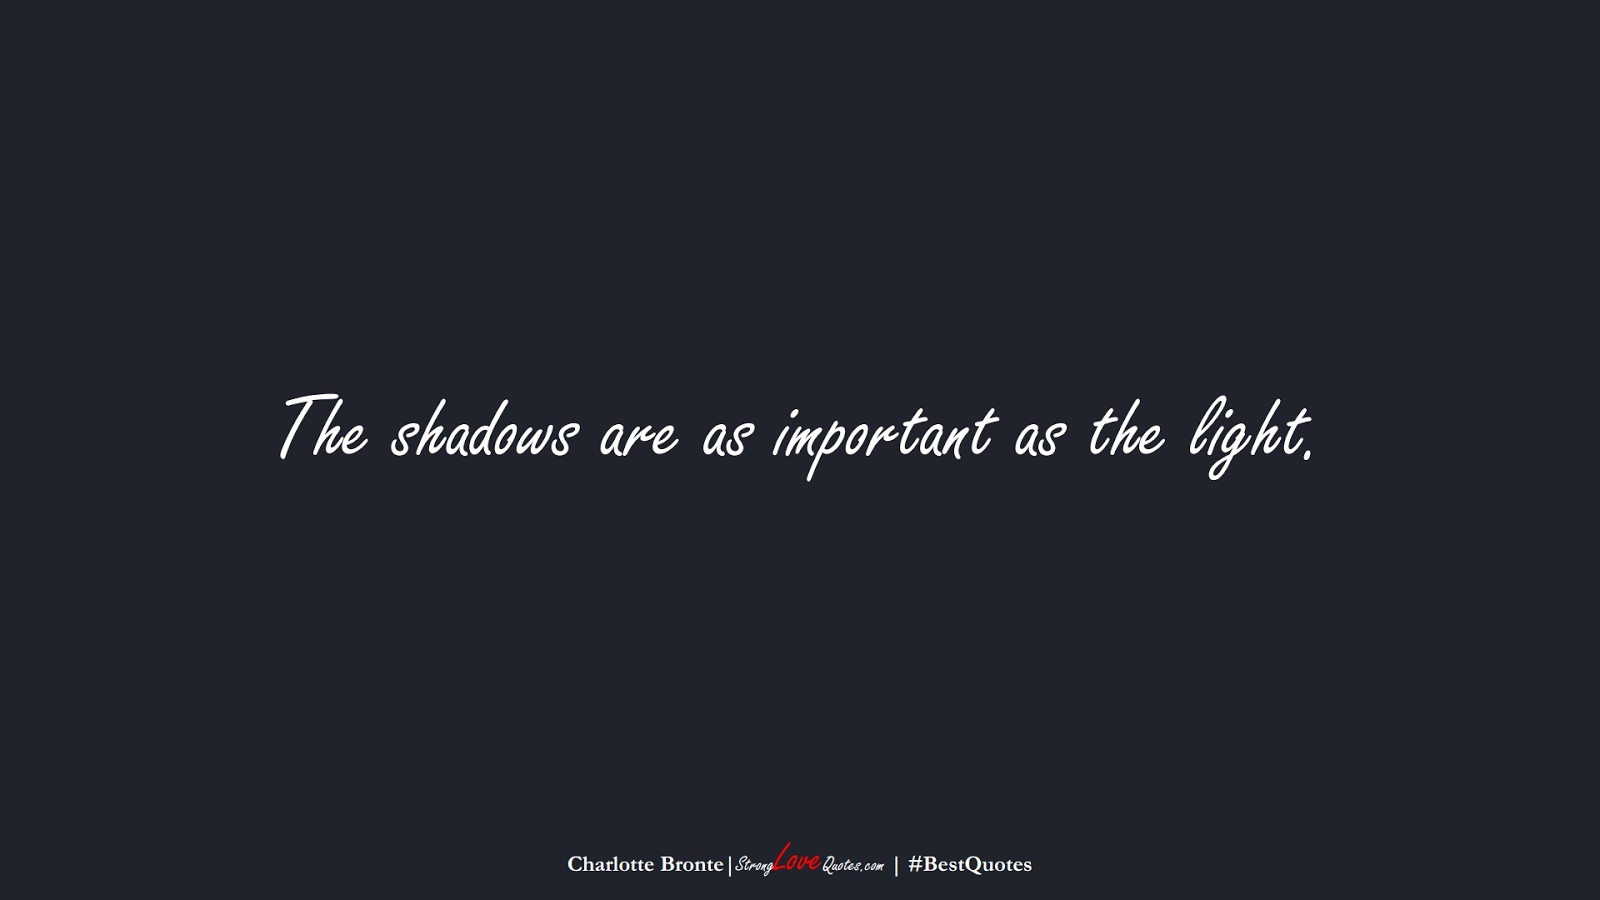 The shadows are as important as the light. (Charlotte Bronte);  #BestQuotes